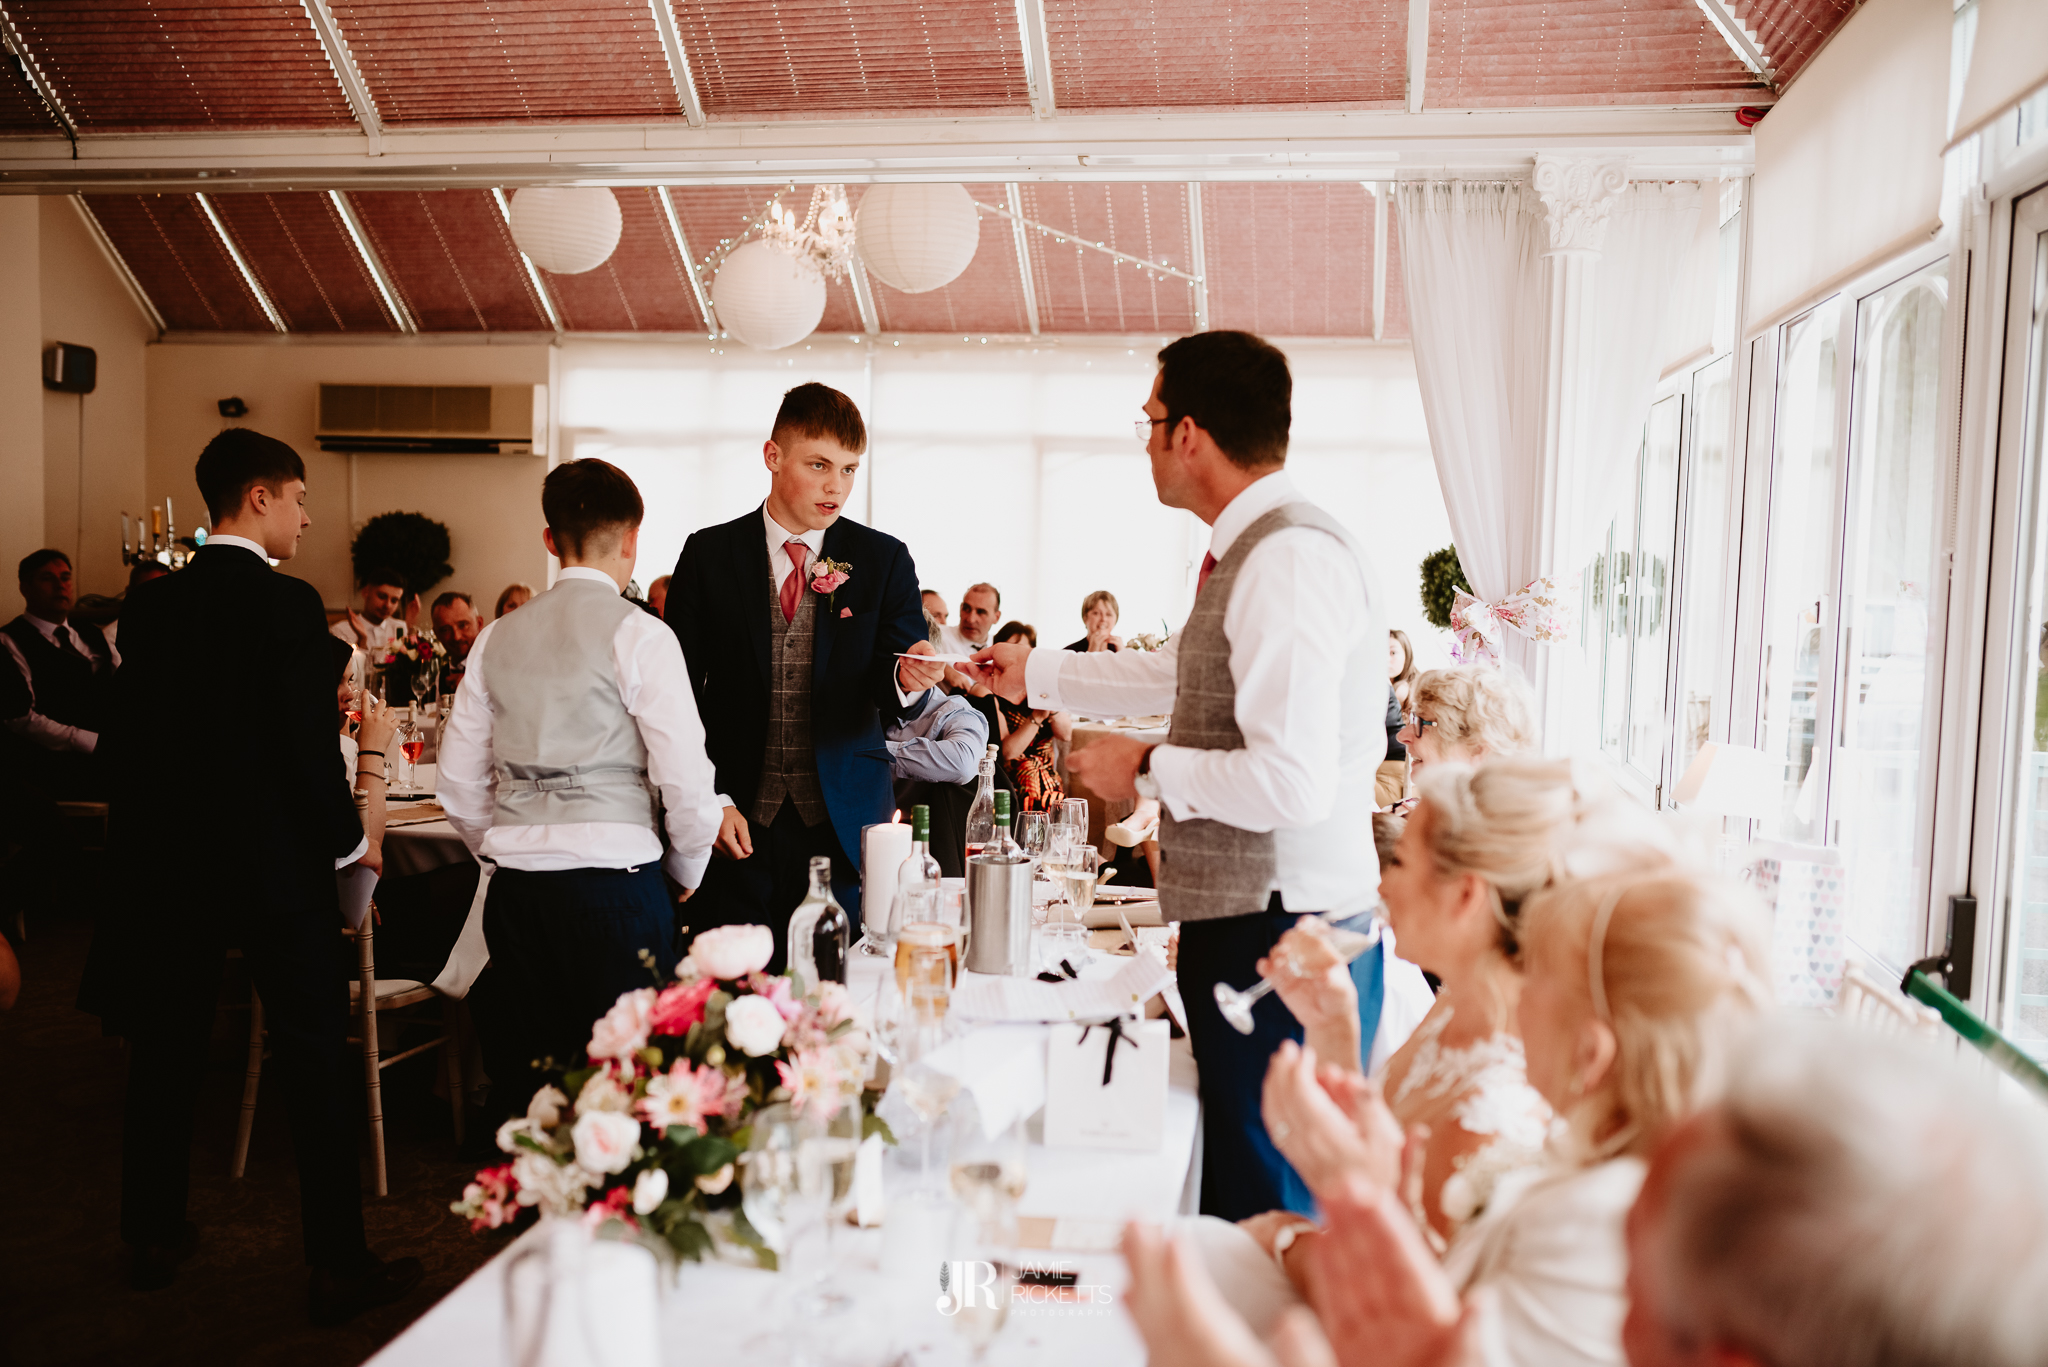 Wroxeter-Hotel-Wedding-Photography-In-Shropshire-By-Shropshire-Wedding-Photographer-Jamie-Ricketts-171.JPG